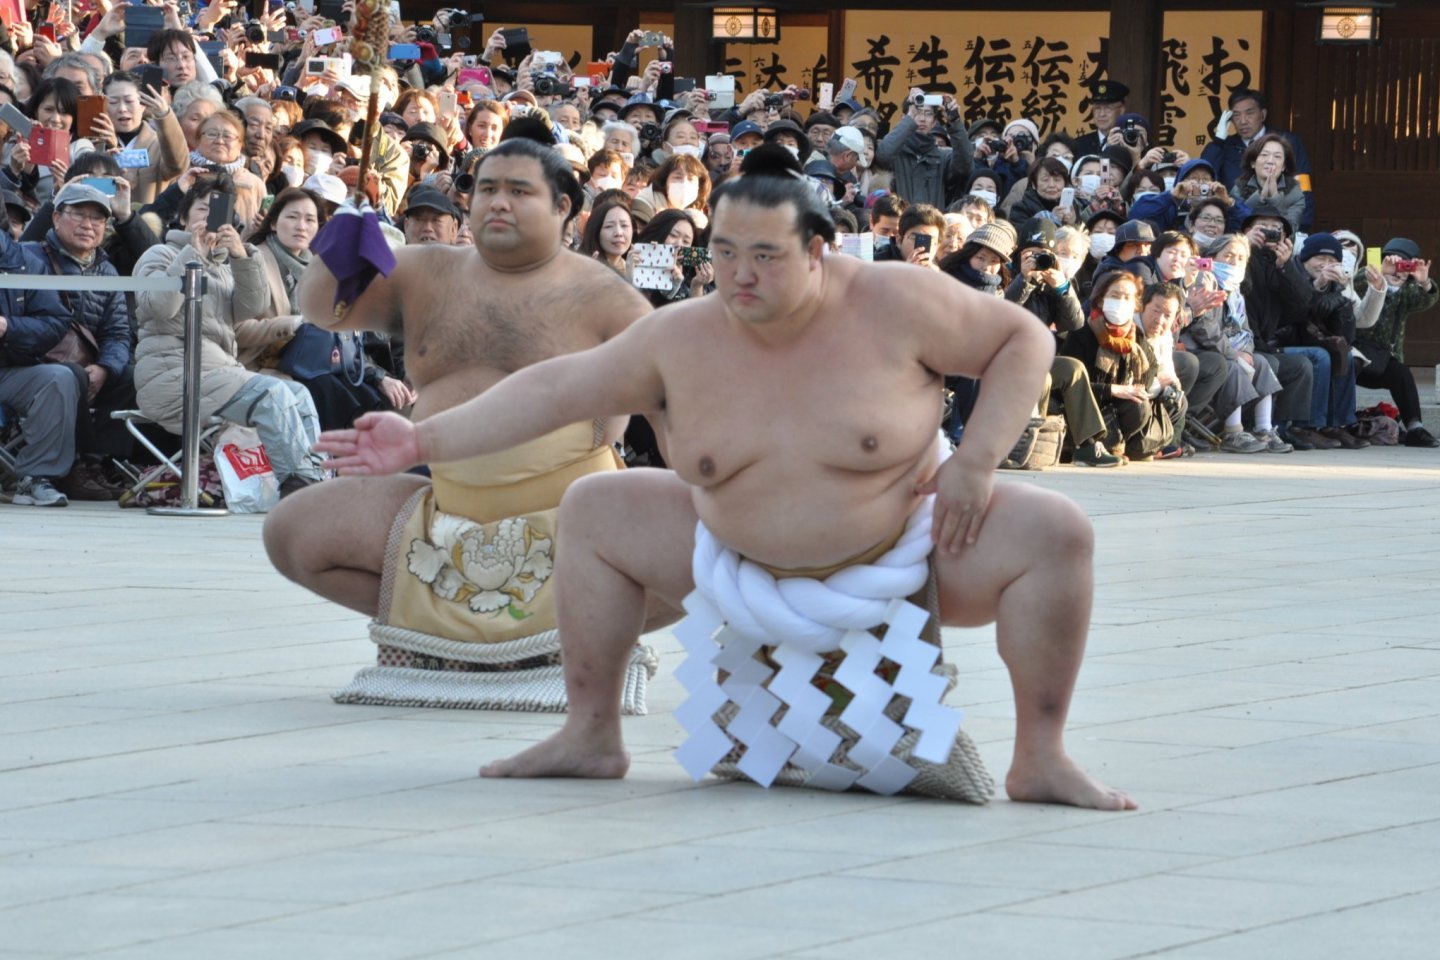 Kisenosato performing a ritual dance in his role as yokozuna